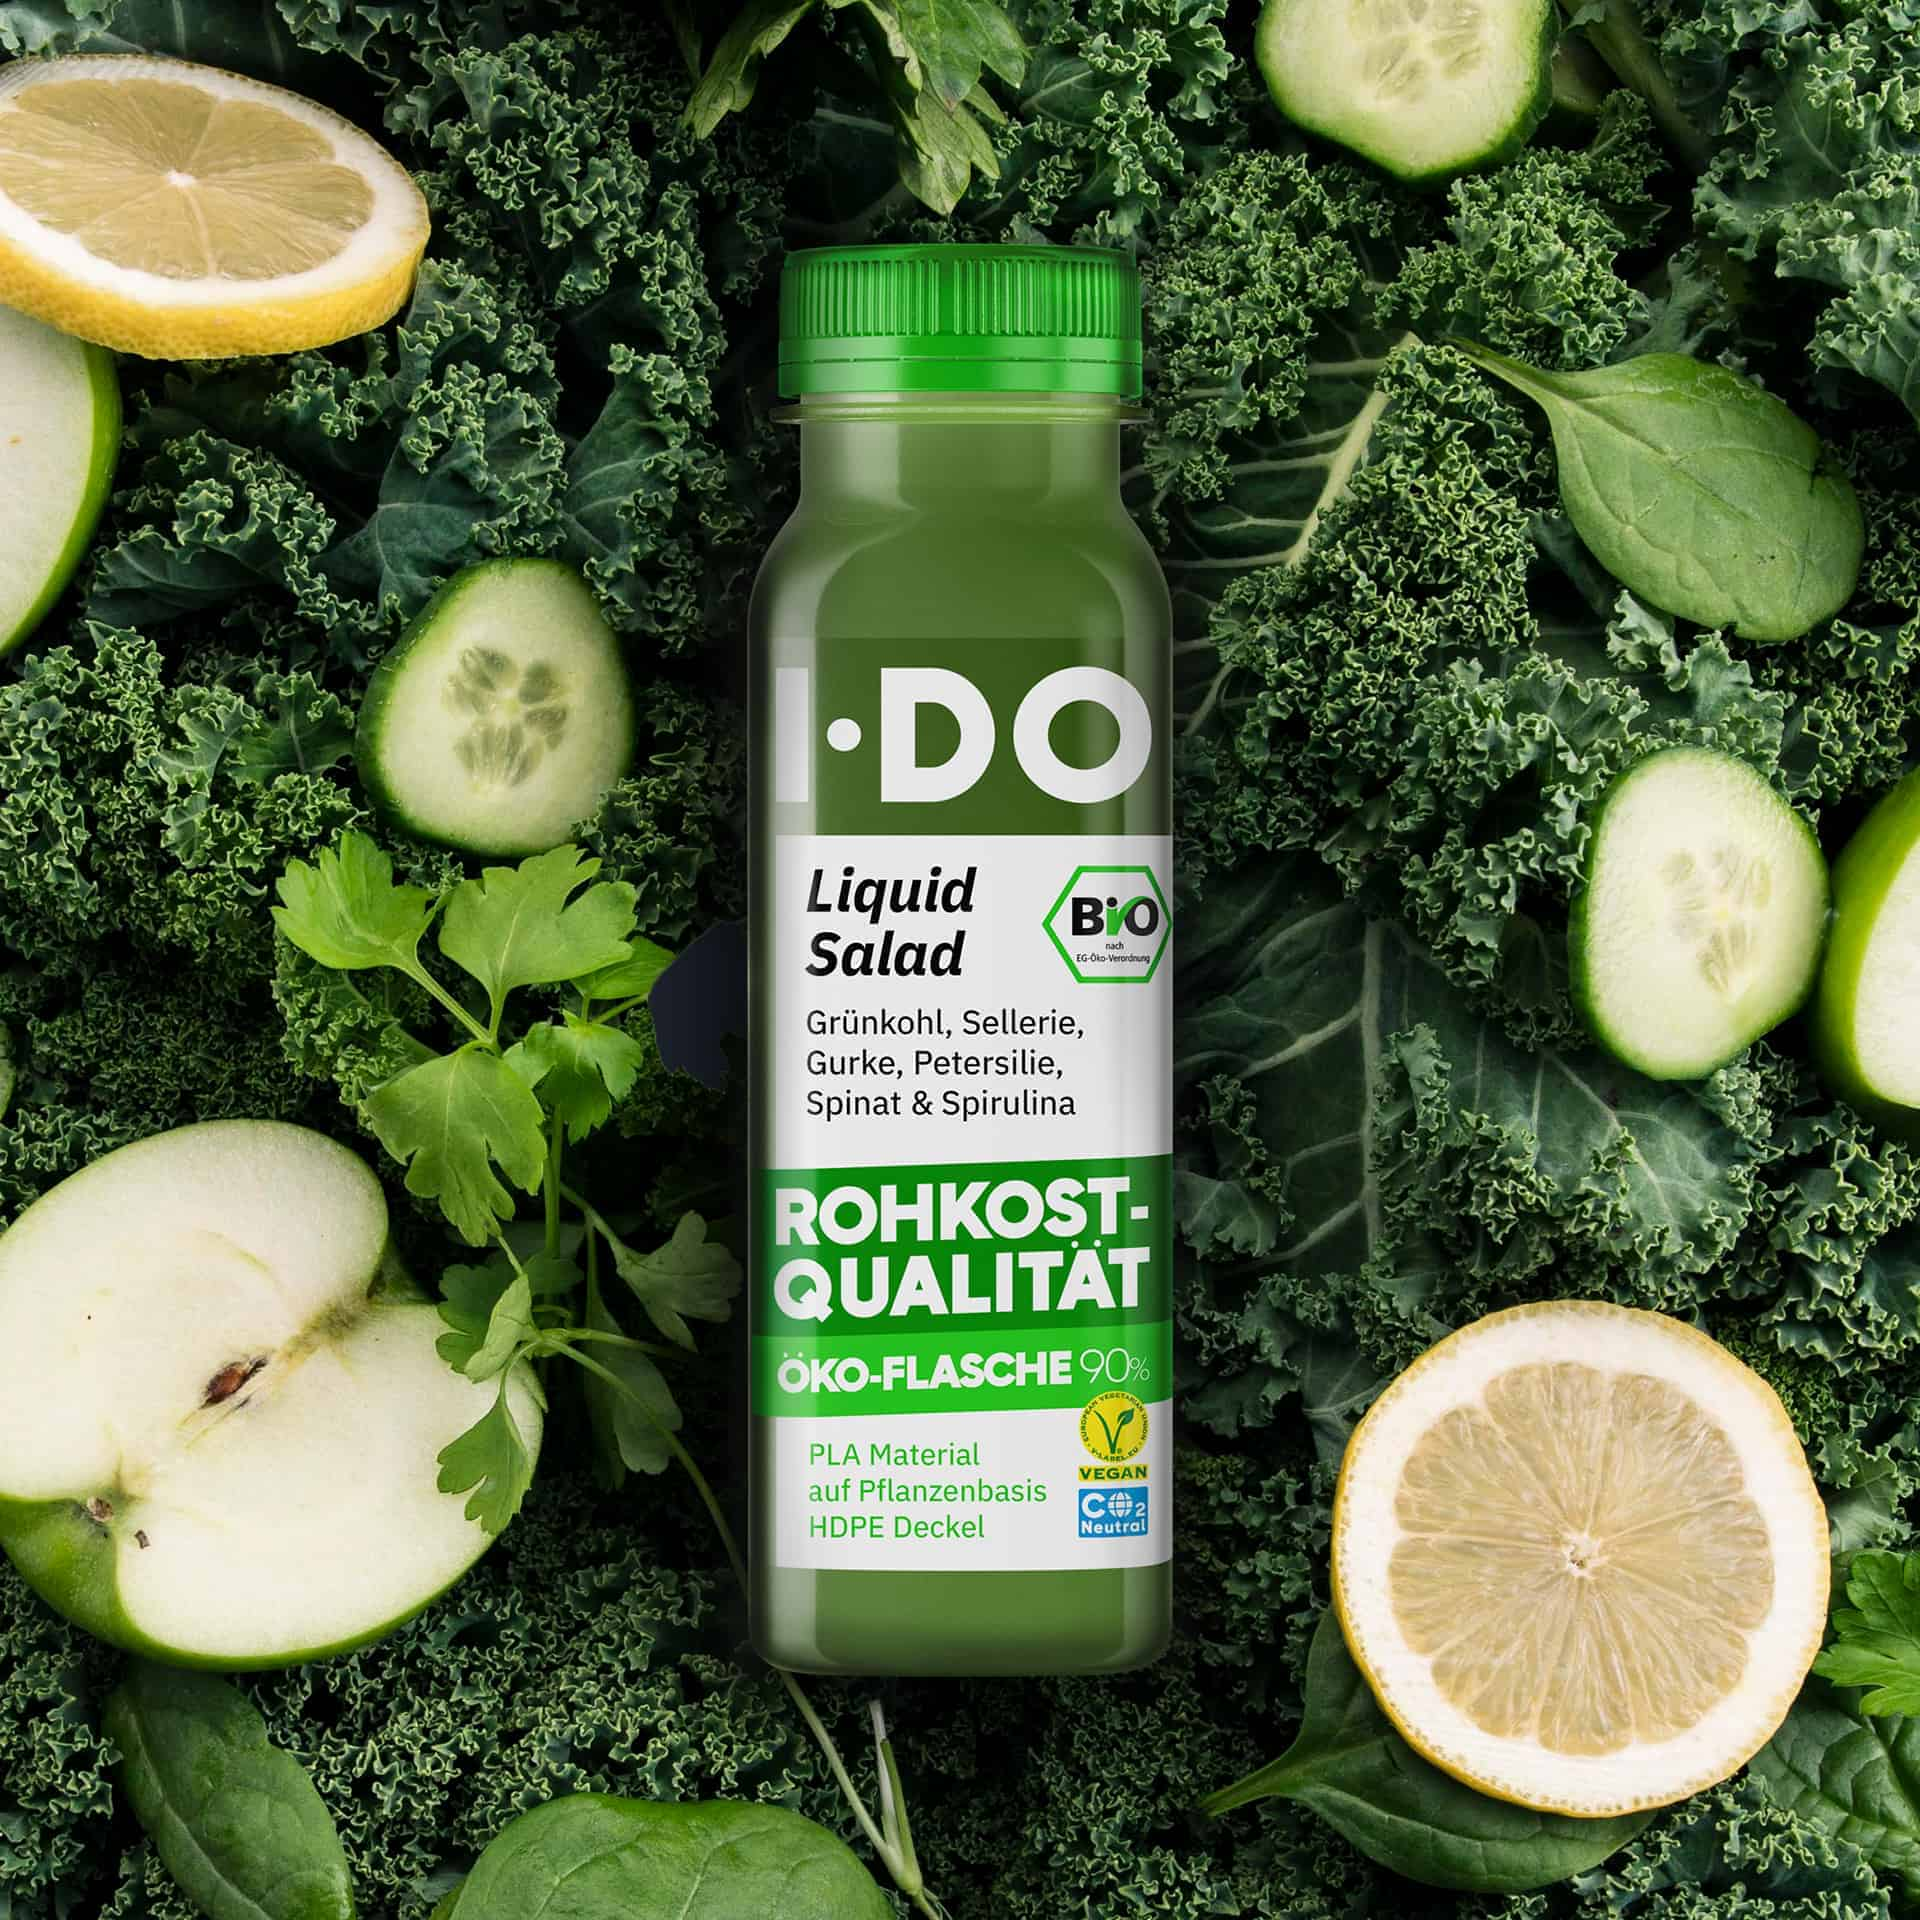 I·DO Liquid Salad, Green Juice in der Öko-Flasche 90%